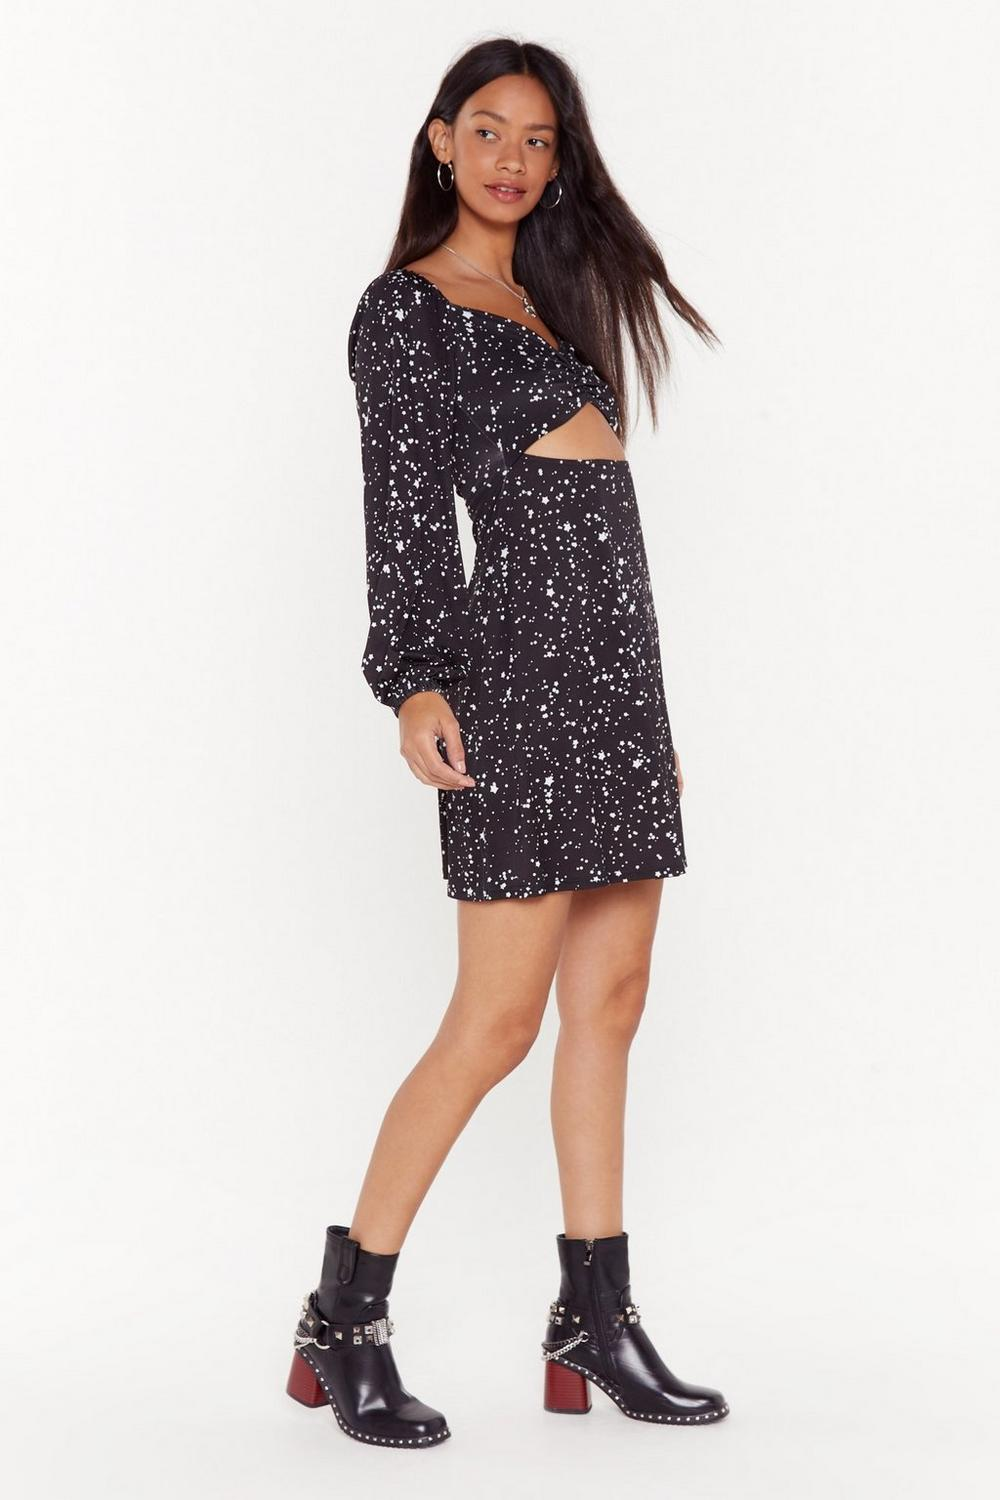 Look How Star We've Come Cut Out Mini Dress by Nasty Gal